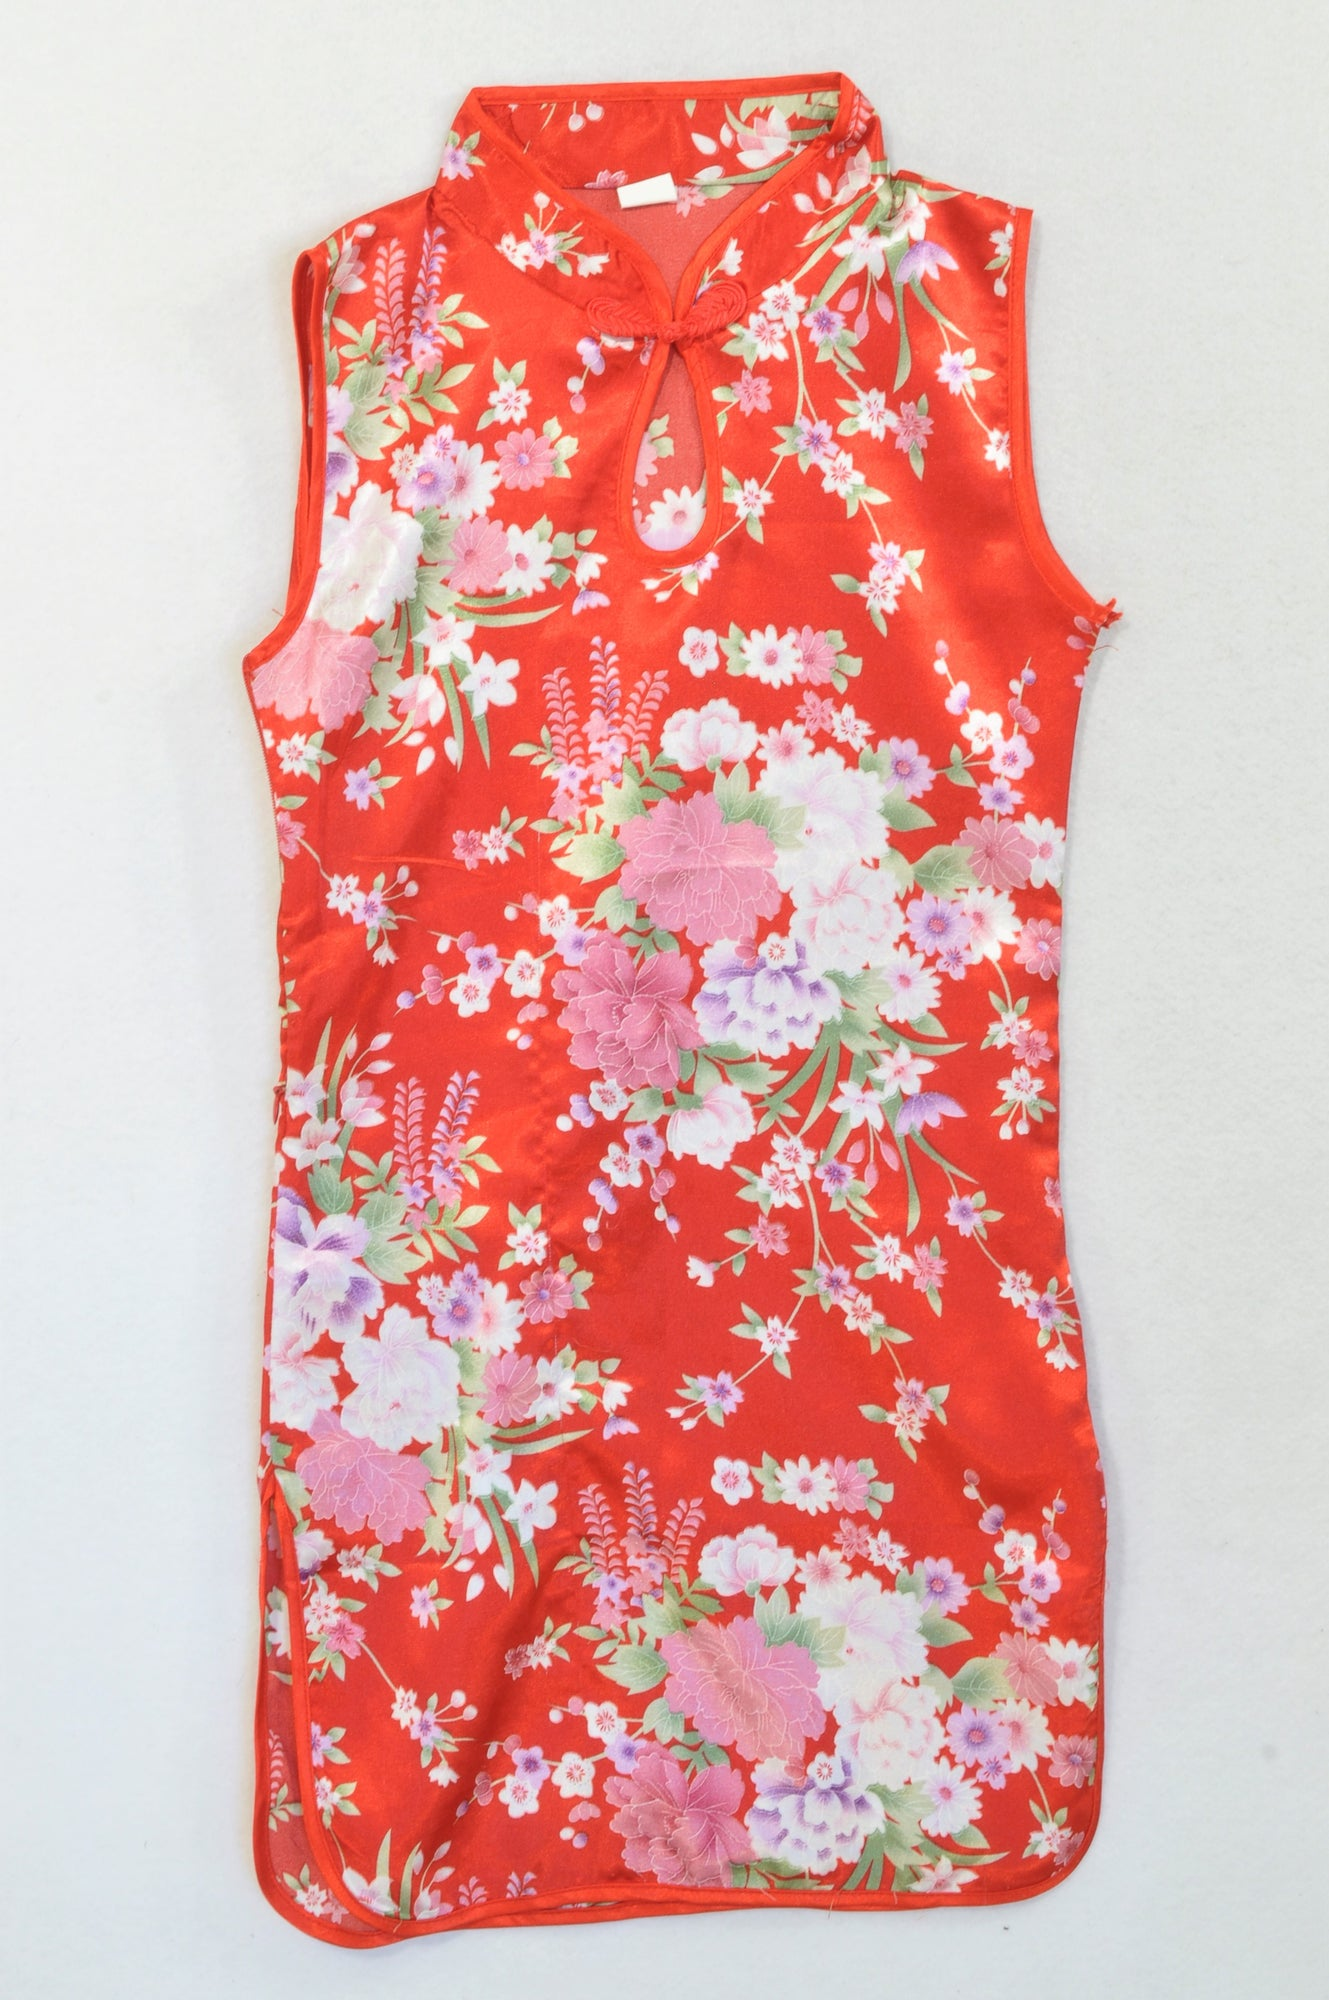 Wudemei Red Traditional Floral Dress Girls 7-8 years